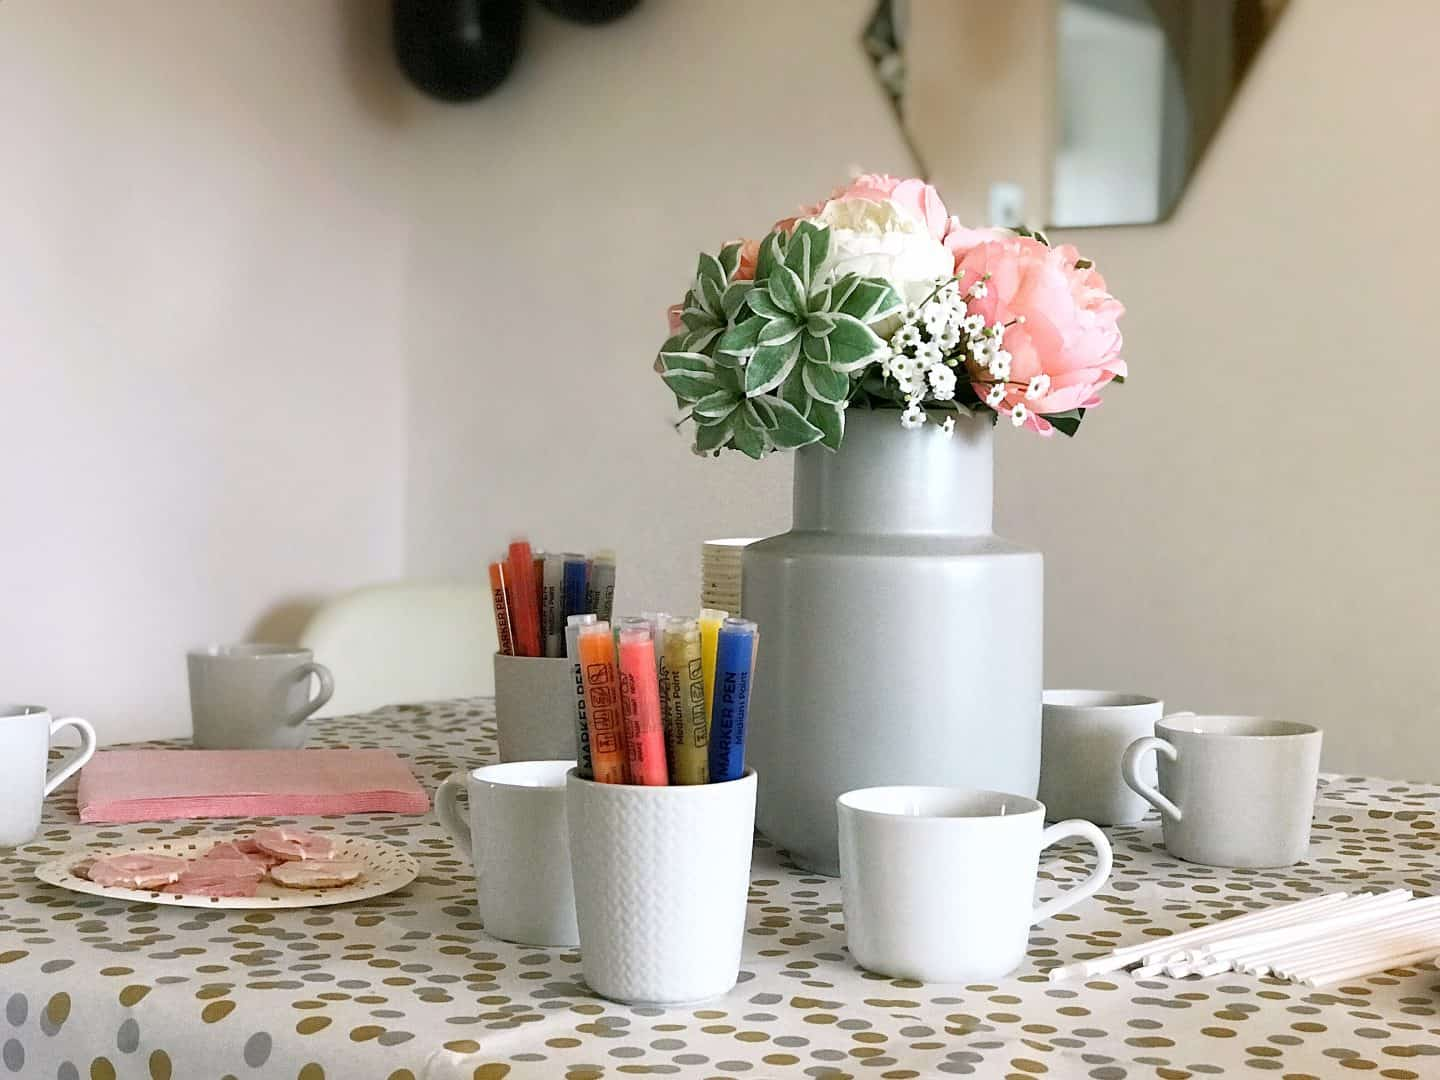 Ceramic mugs and paint markers ready to decorate